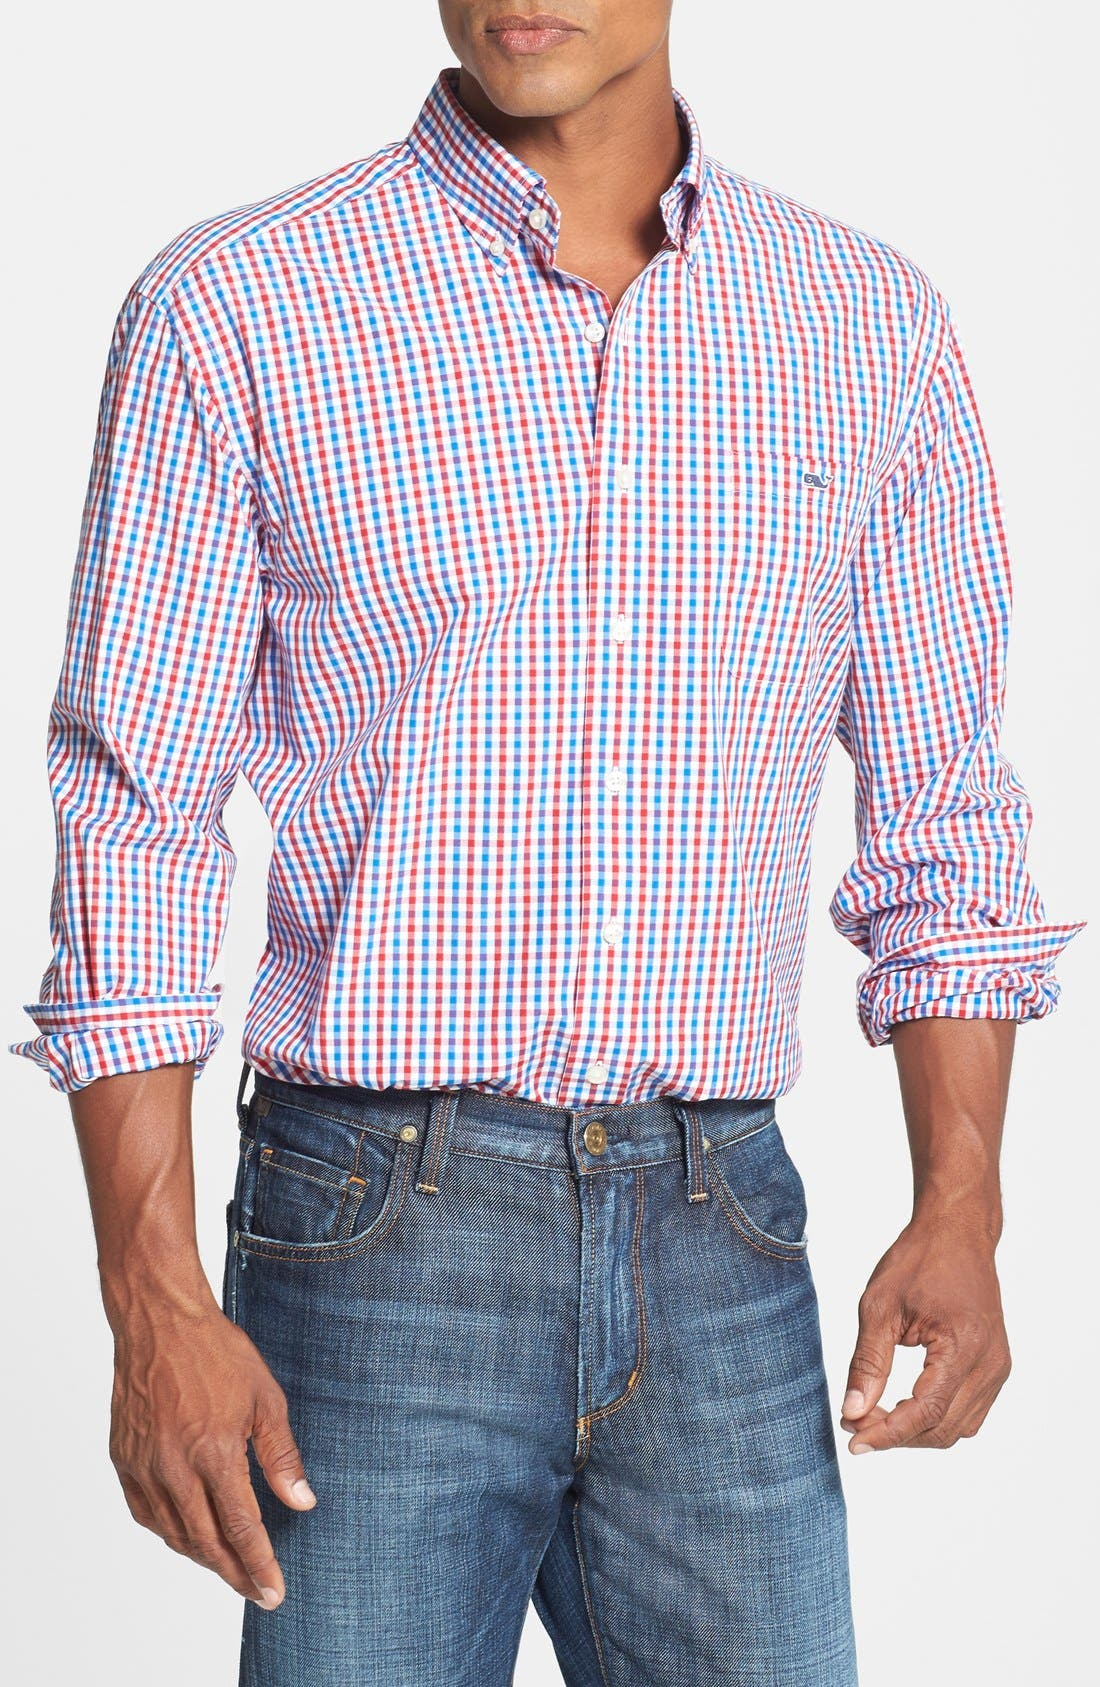 Alternate Image 1 Selected - Vineyard Vines 'Tucker - Bailey's Bay' Classic Fit Tattersall Sport Shirt